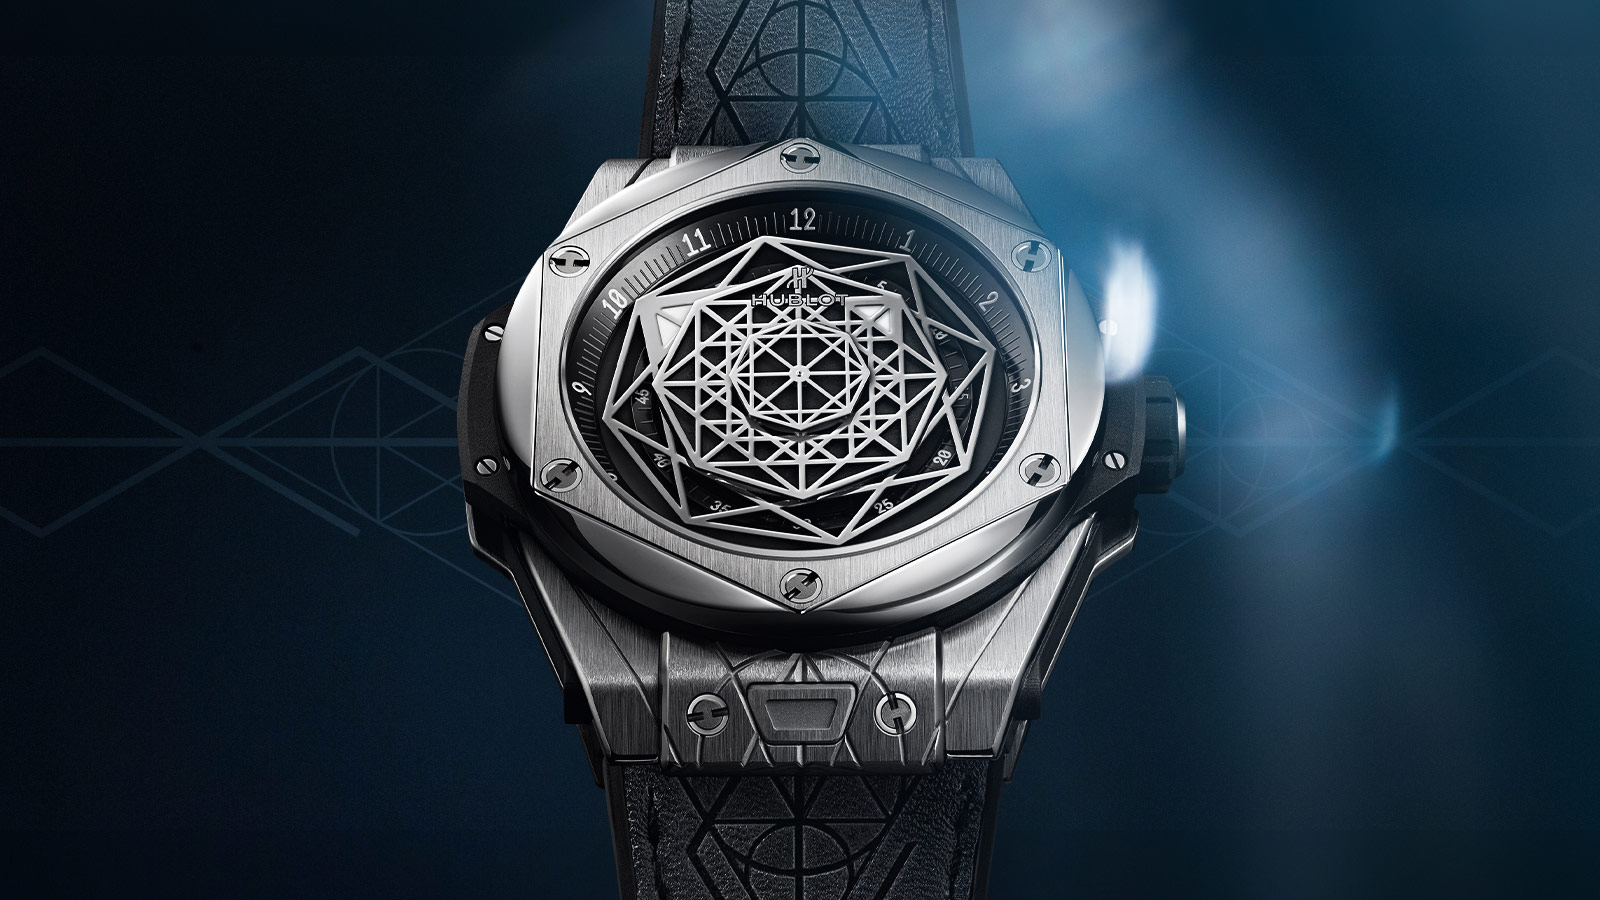 Hublot-Big-Bang-Sang-Bleu-1.jpg